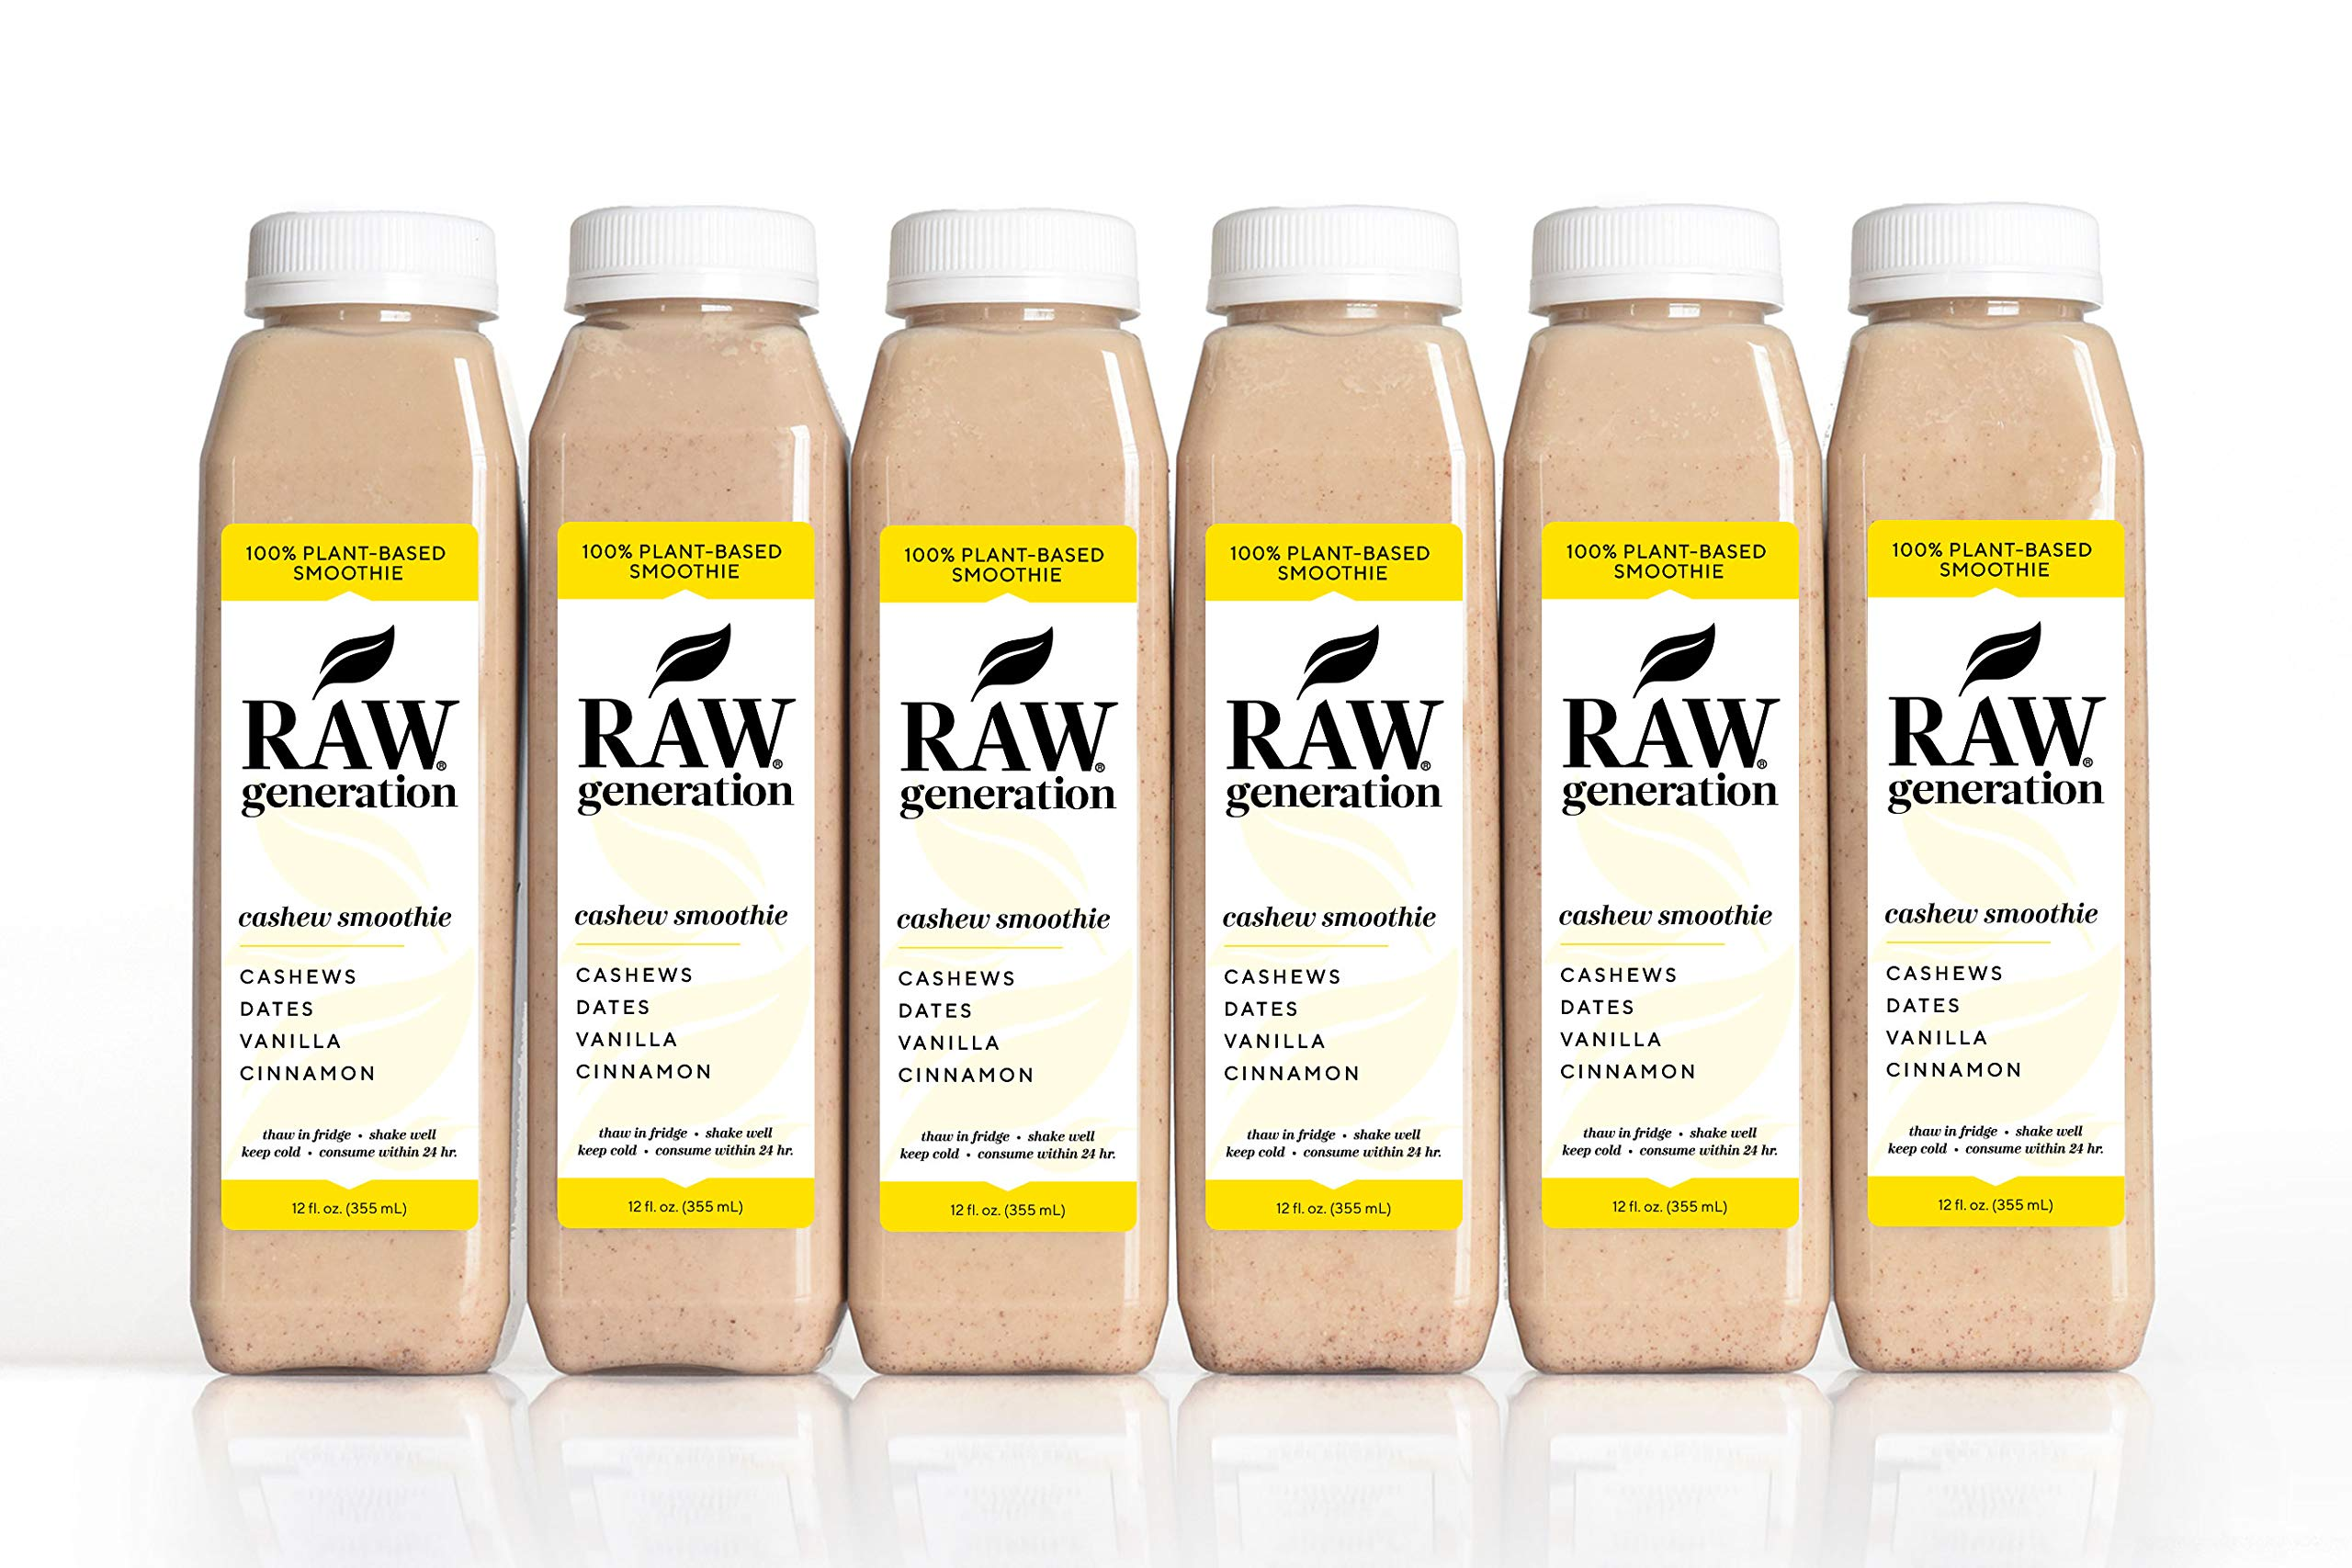 Raw Generation Cashew Smoothie - Healthiest Way to Lose Weight & Stay Strong/Plant-Based Protein Smoothie / 18 Count by RAW generation